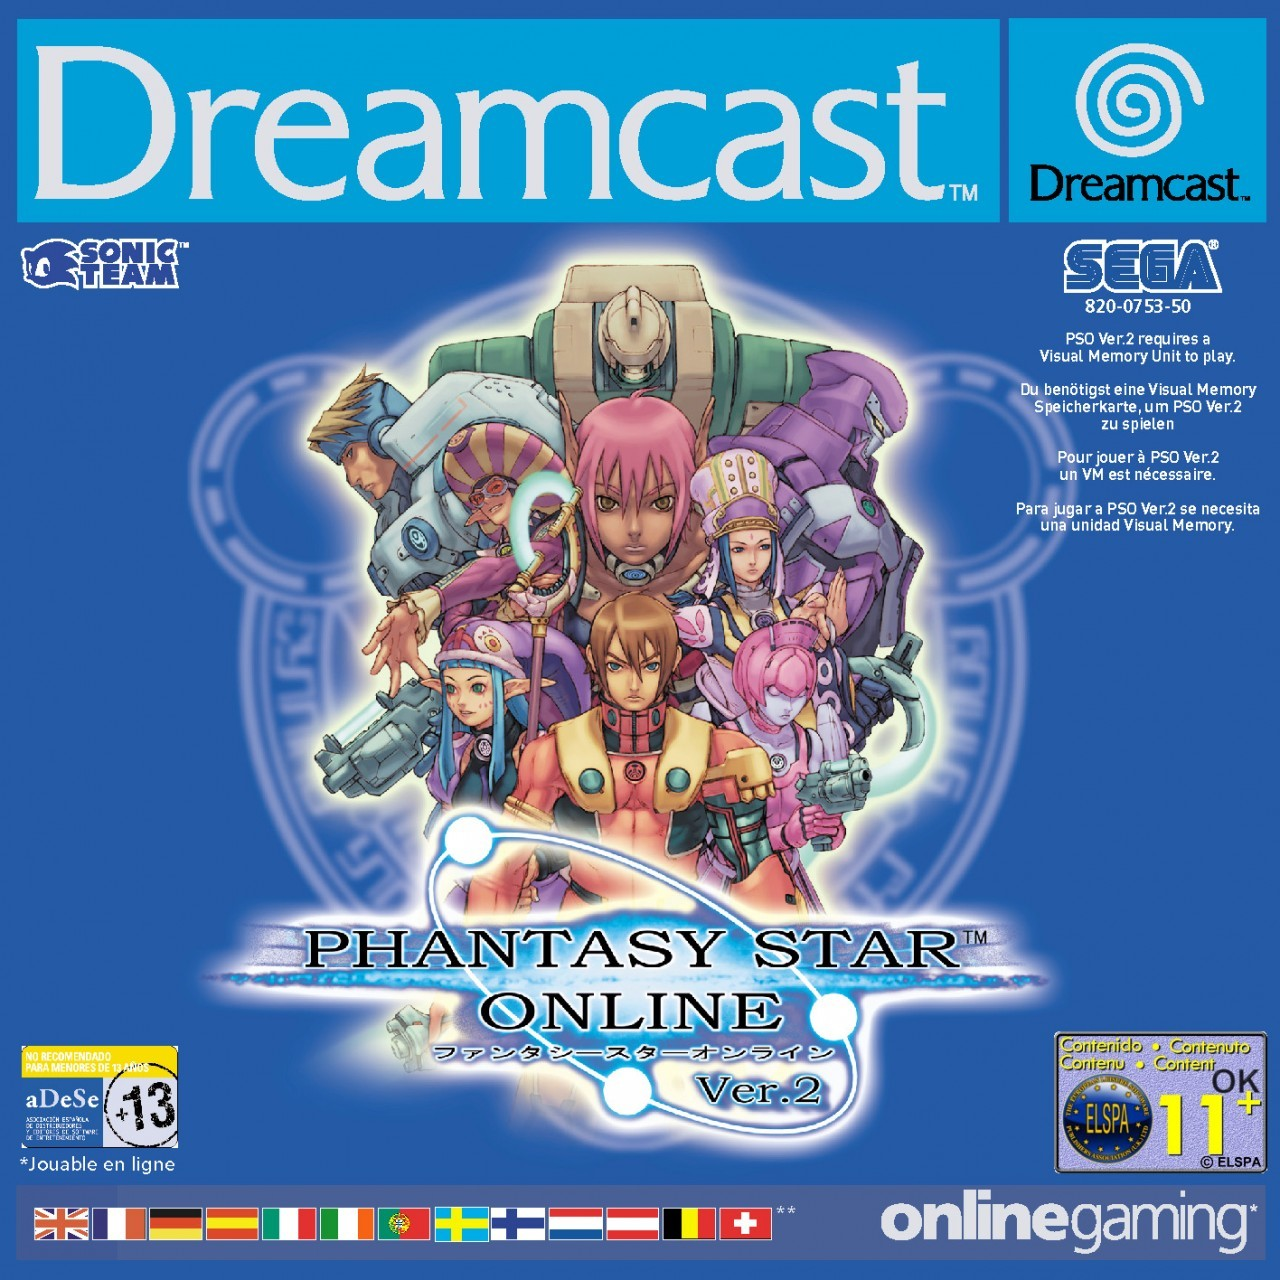 phantasy star online version 2 jeu rpg online développeur sonic team